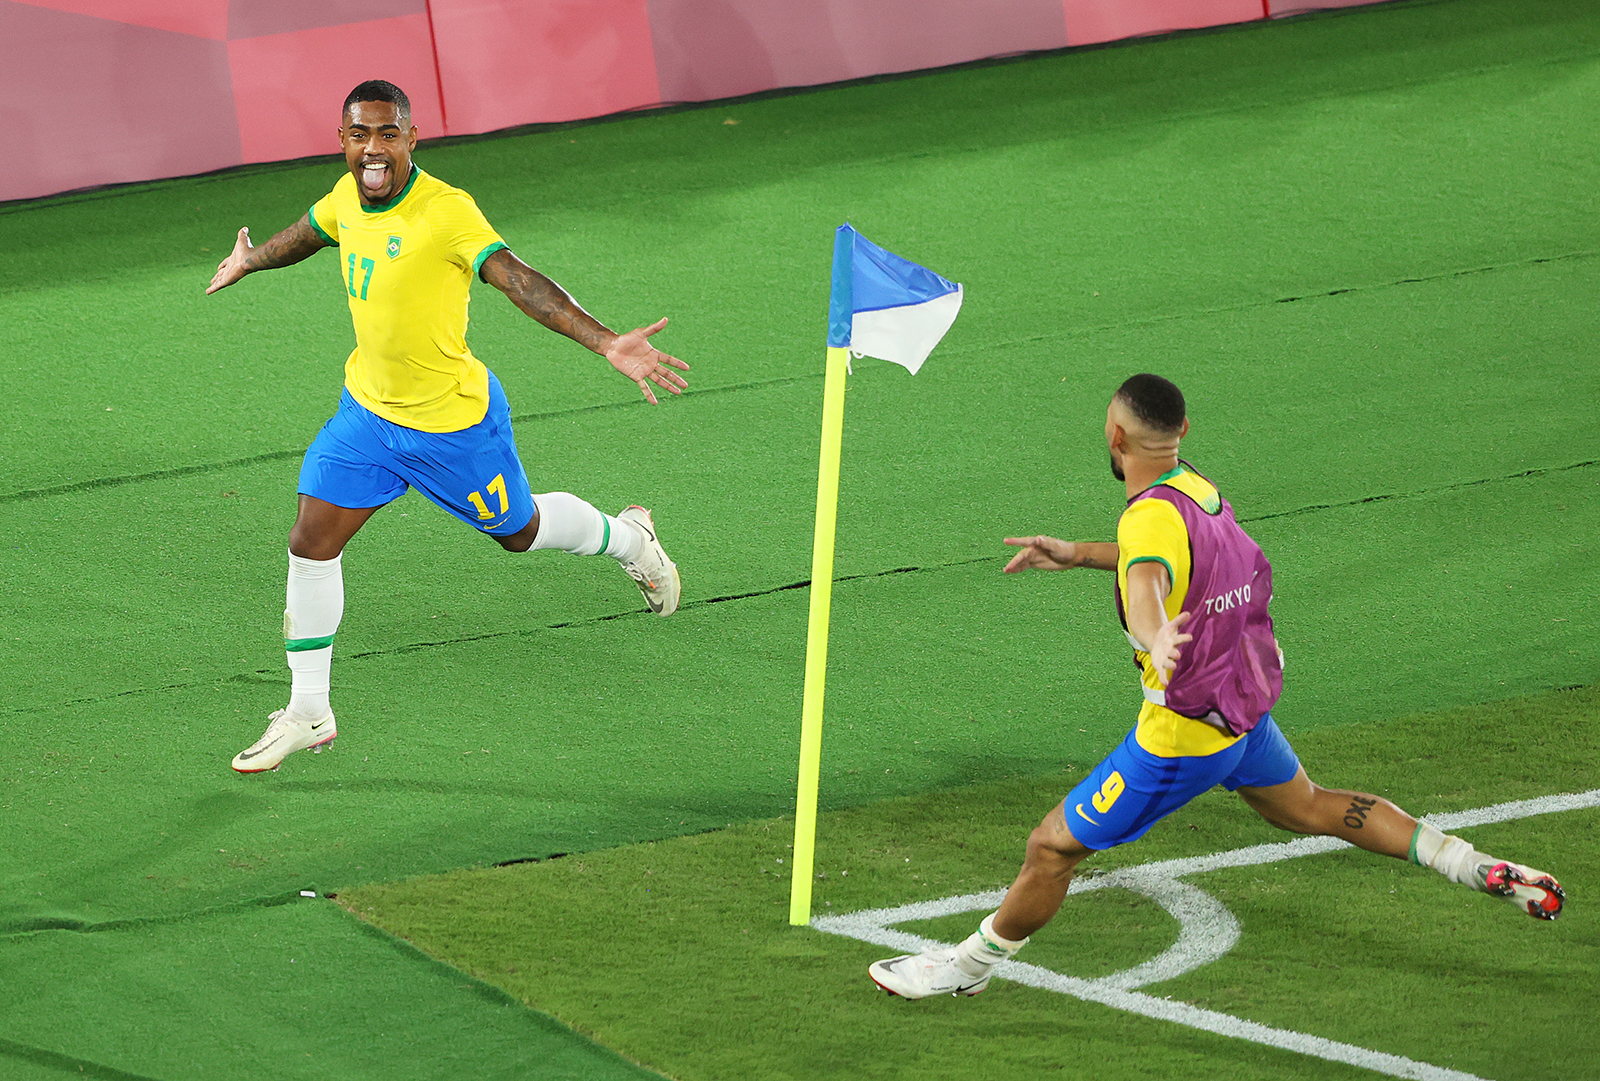 Malcom of Team Brazil celebrates after scoring Brazil's second goal during the men's gold medal match between Brazil and Spain on day fifteen of the Tokyo 2020 Olympic Games at International Stadium Yokohama on August 7, in Yokohama, Japan.